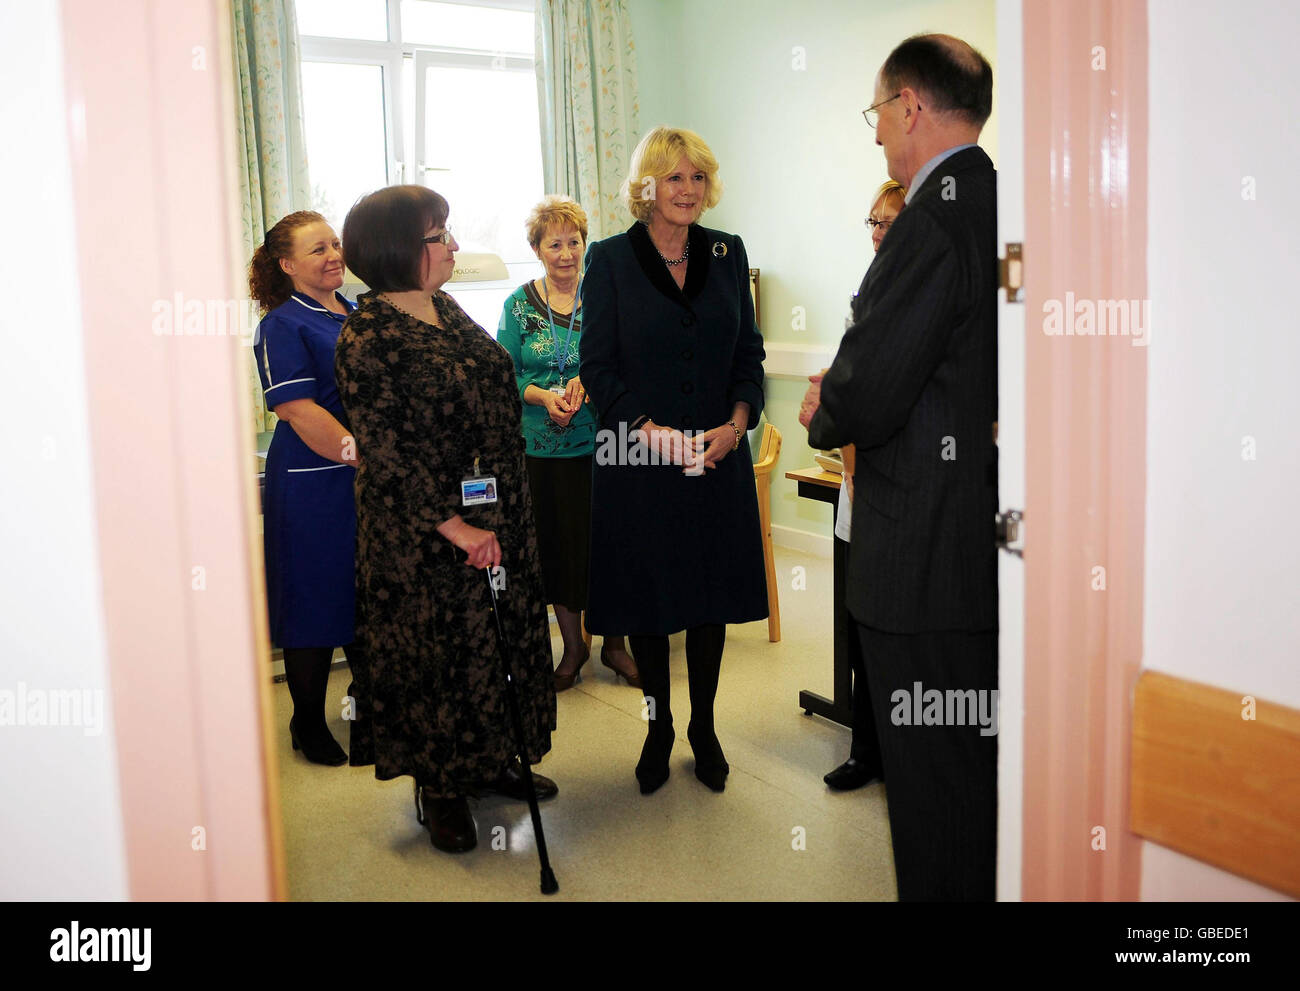 Rotherham Hospital High Resolution Stock Photography And Images Alamy